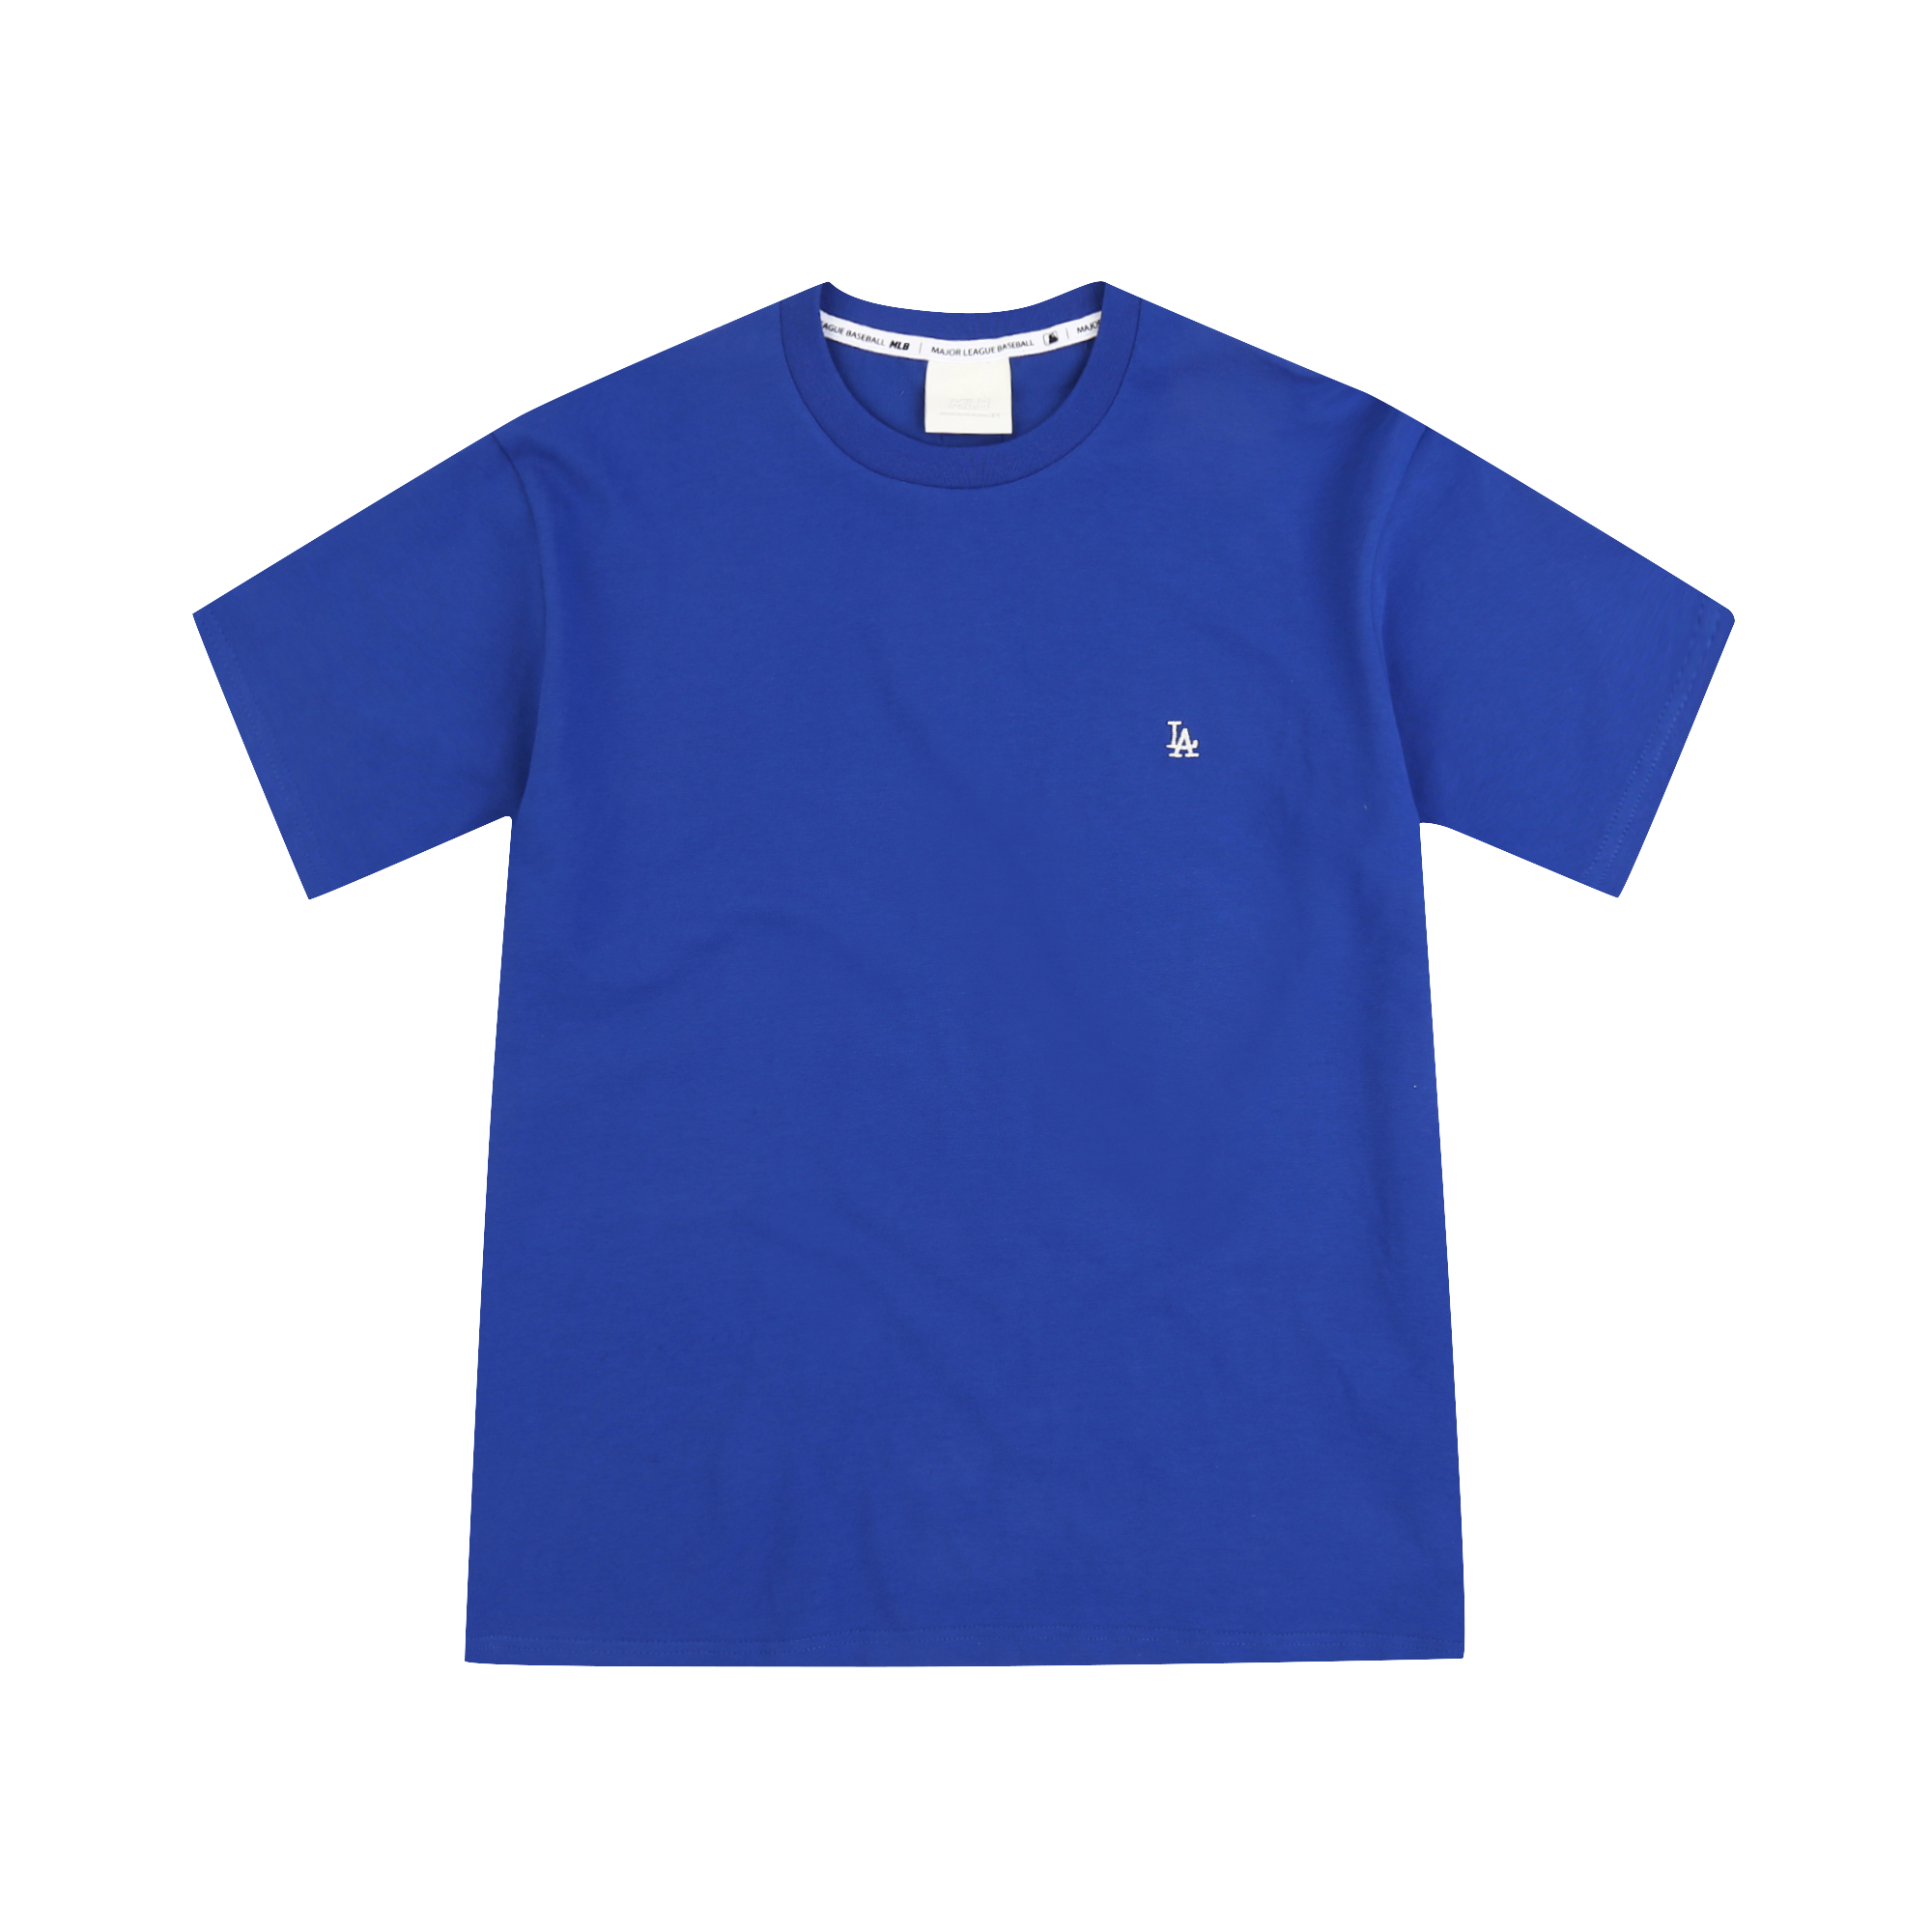 LA DODGERS SMALL LOGO EMBROIDERY BASIC SHORT SLEEVE T-SHIRT